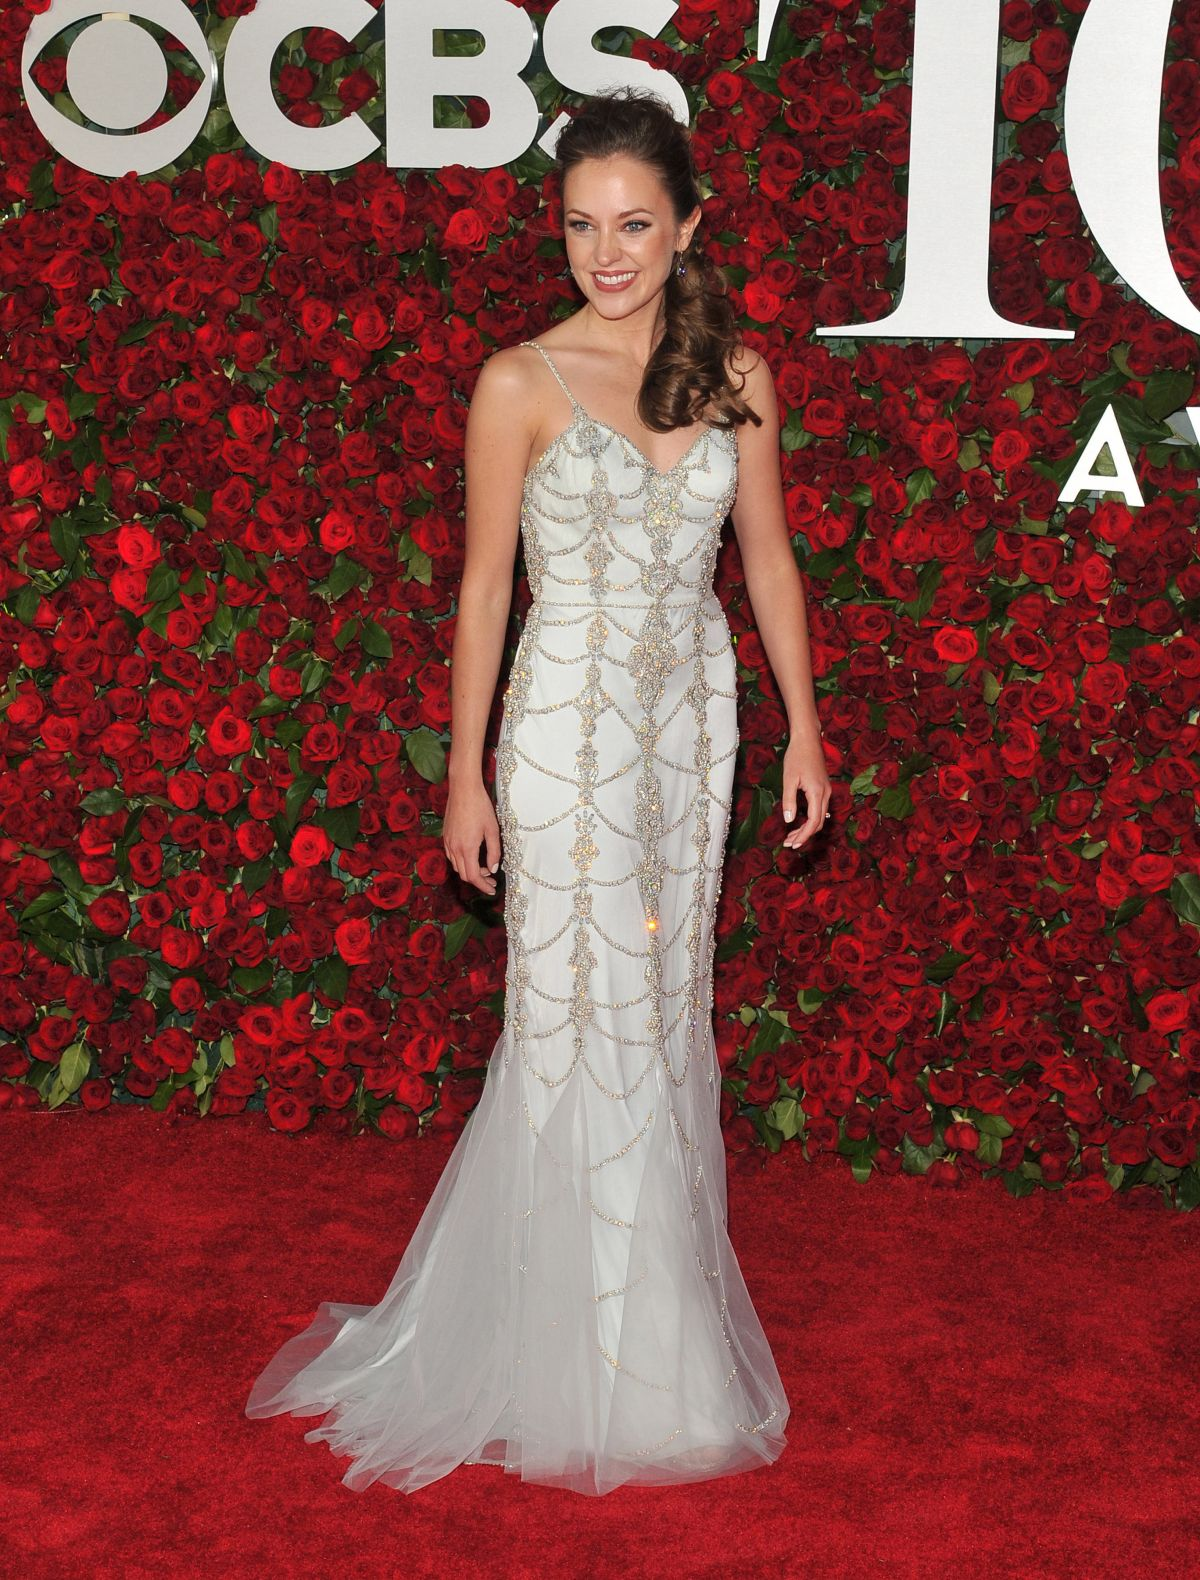 LAURA OSNES at 70th Annual Tony Awards in New York 06/12/2016